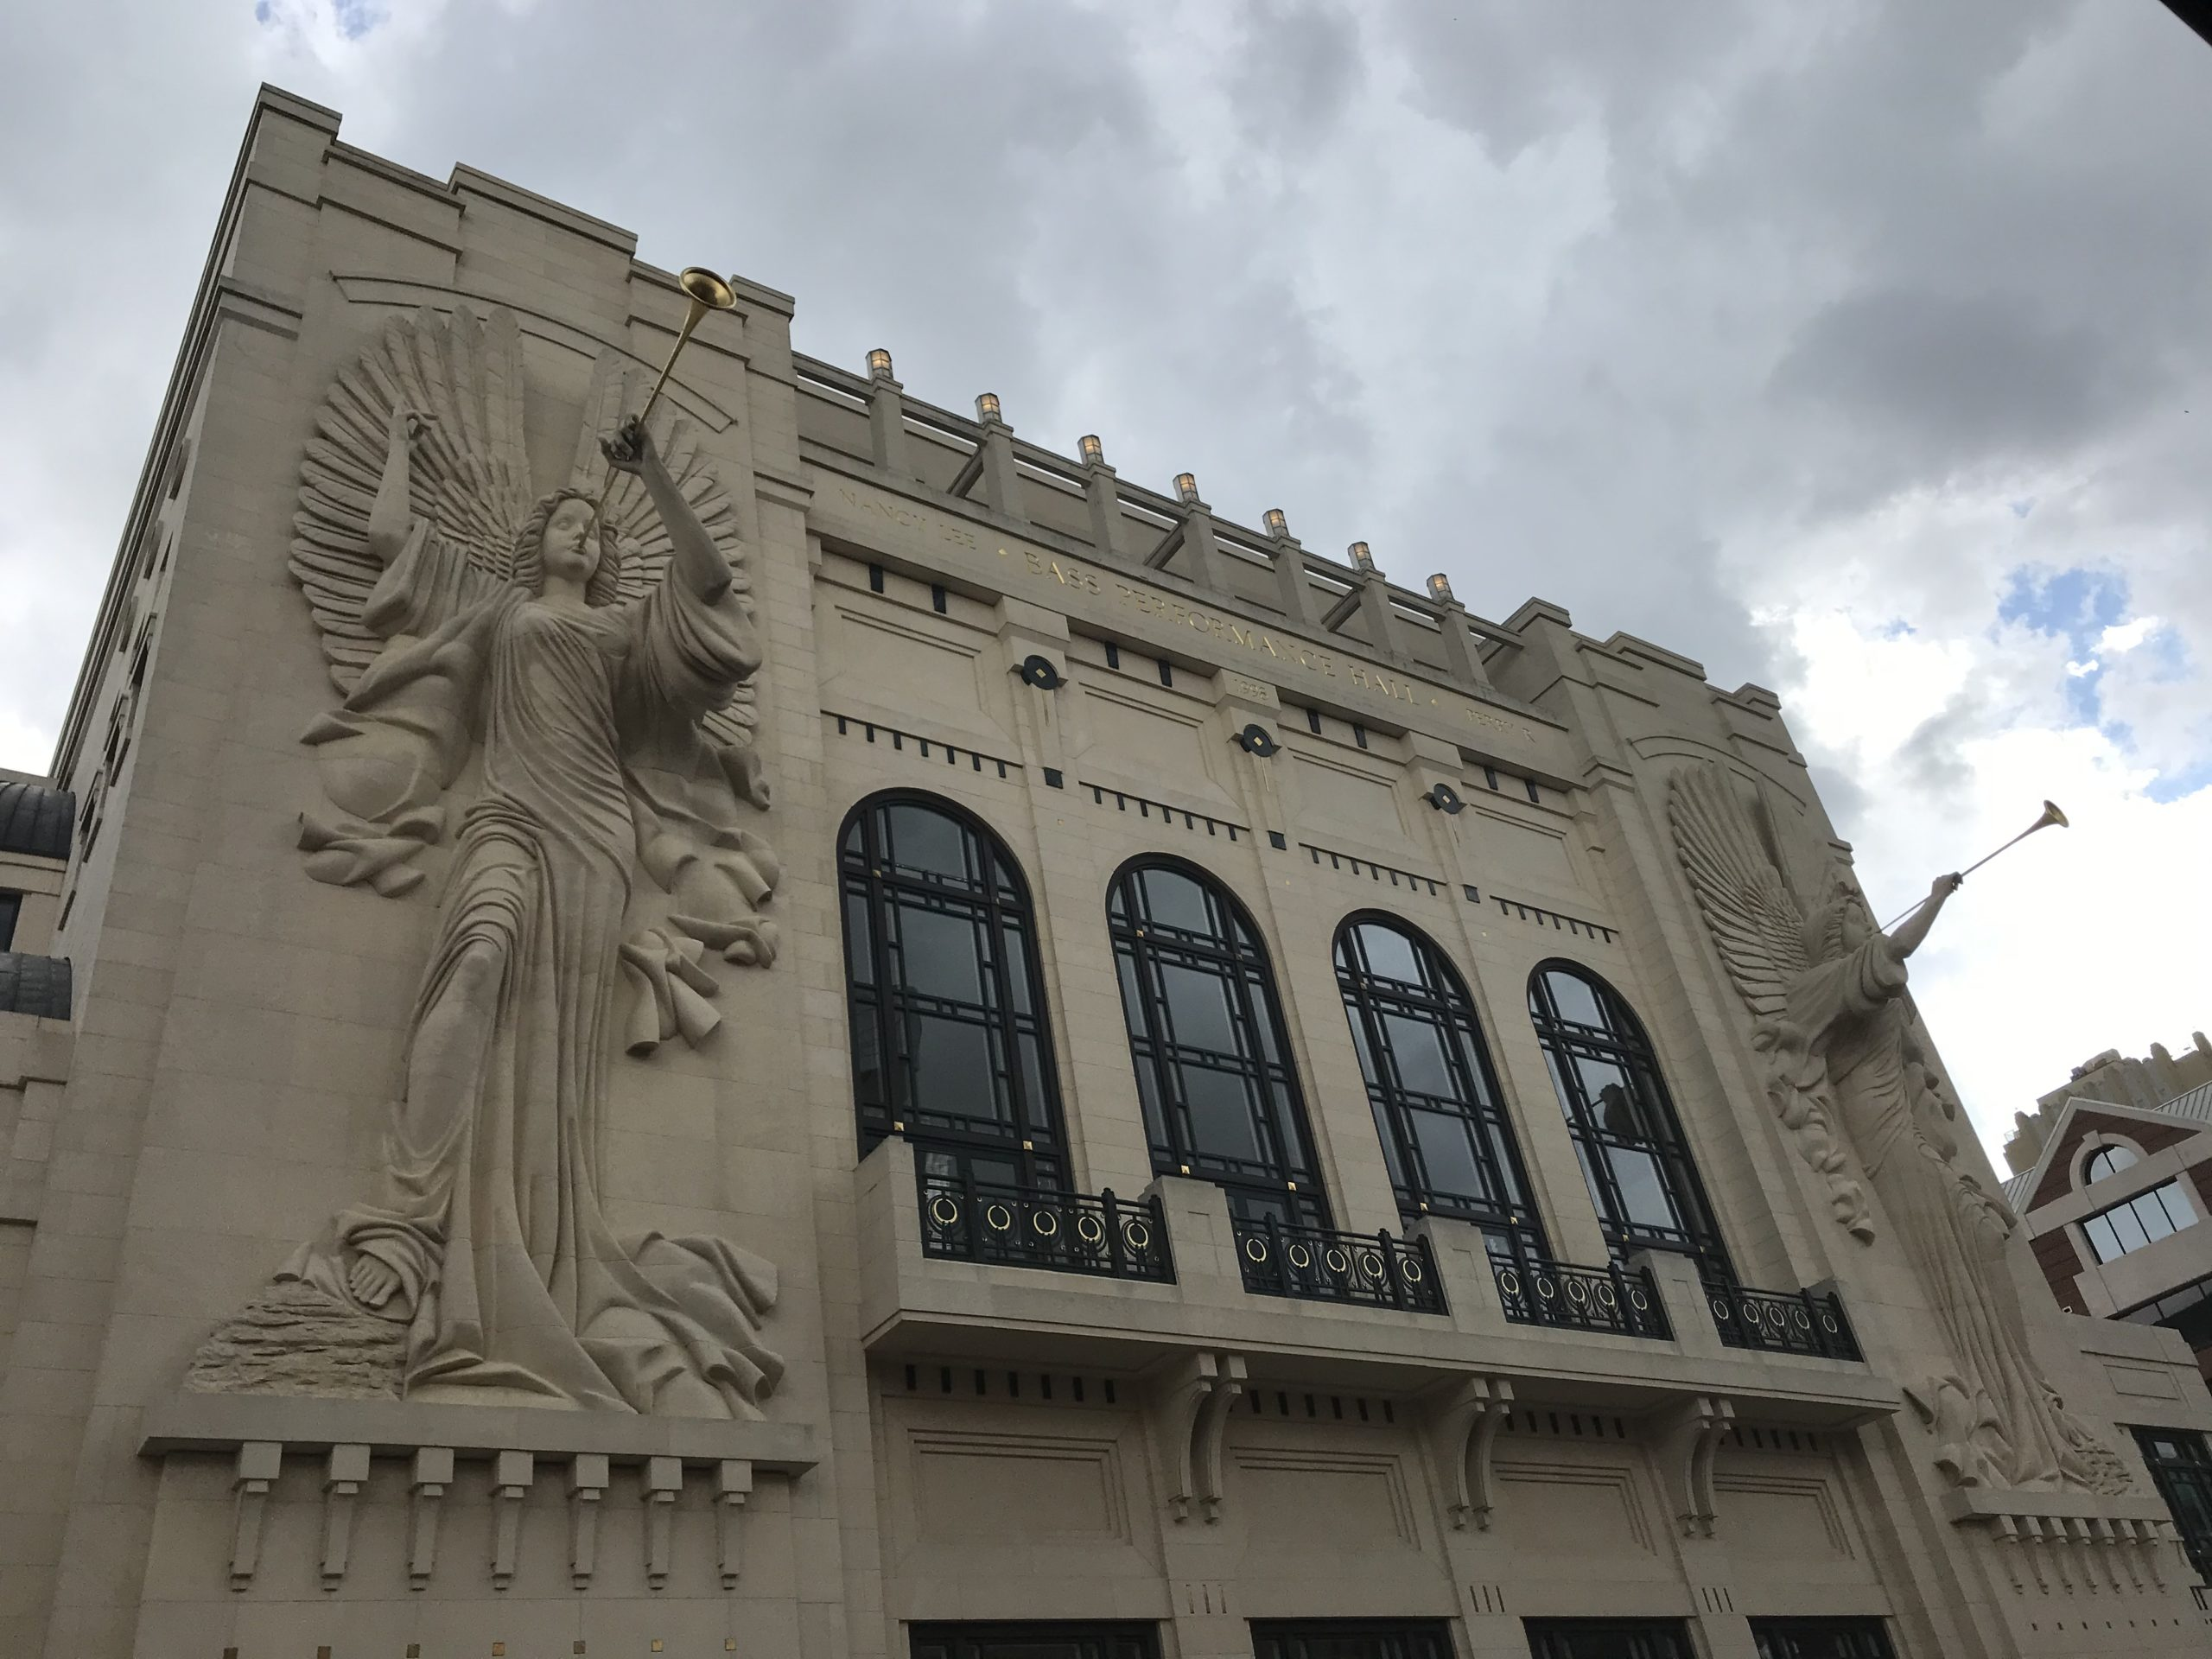 Bass Performance Hall in Fort Worth, Texas